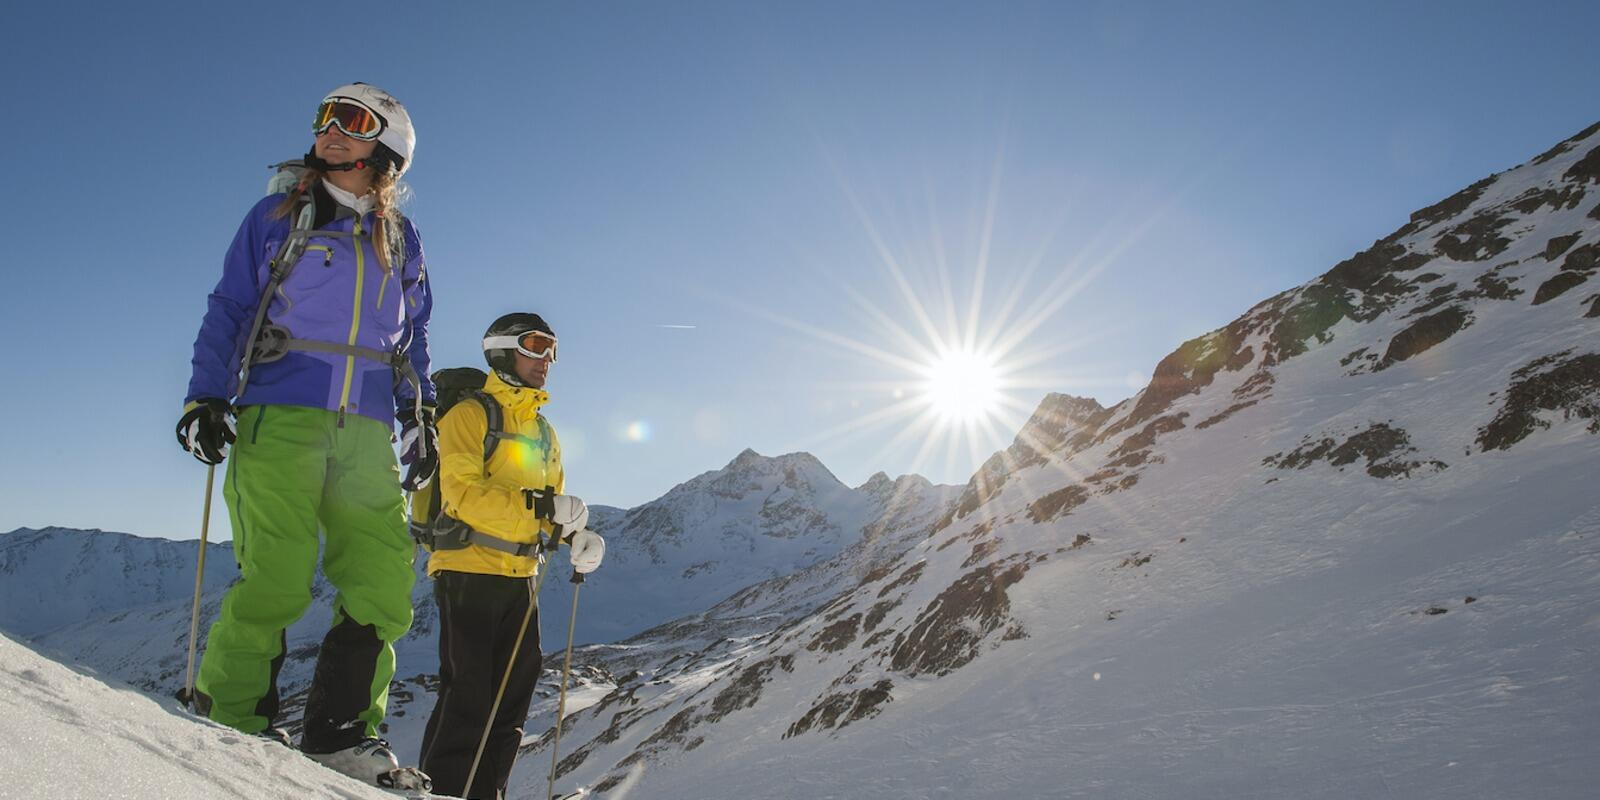 White Experience Bormio - Weekend of skiing and relaxation (1 skipass included)!